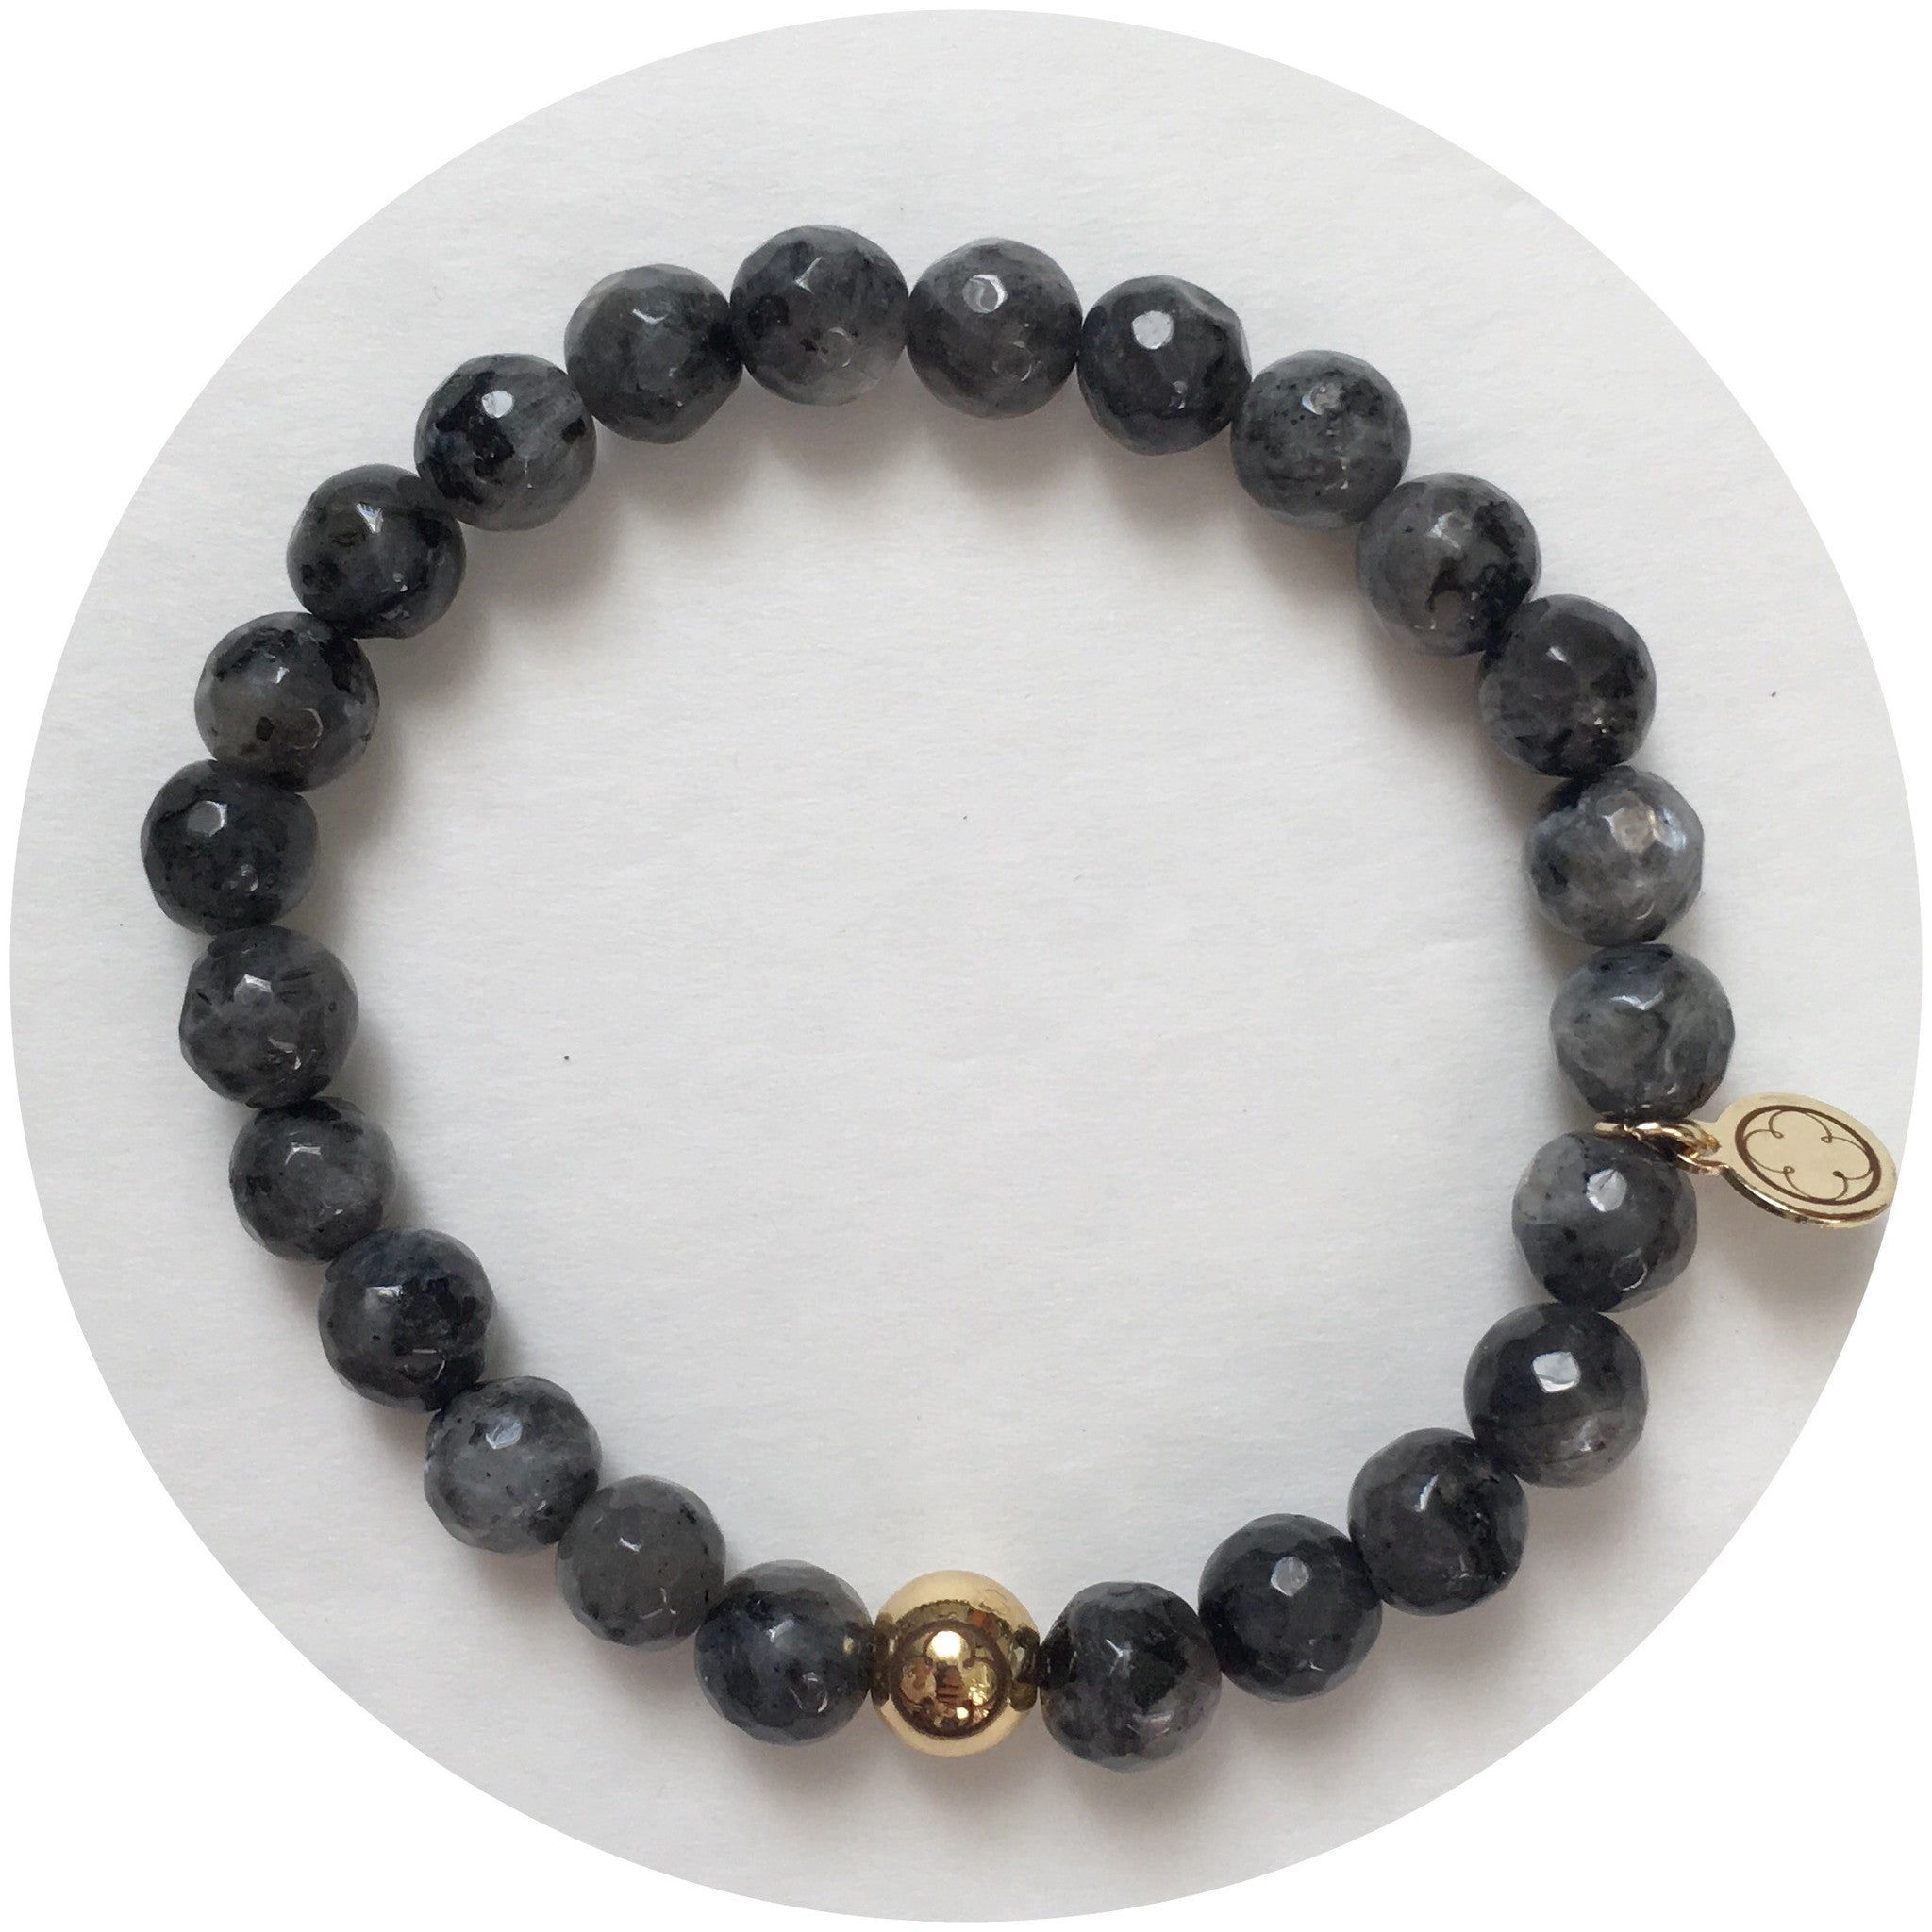 Mens Labradorite with Gold Accent - Oriana Lamarca LLC